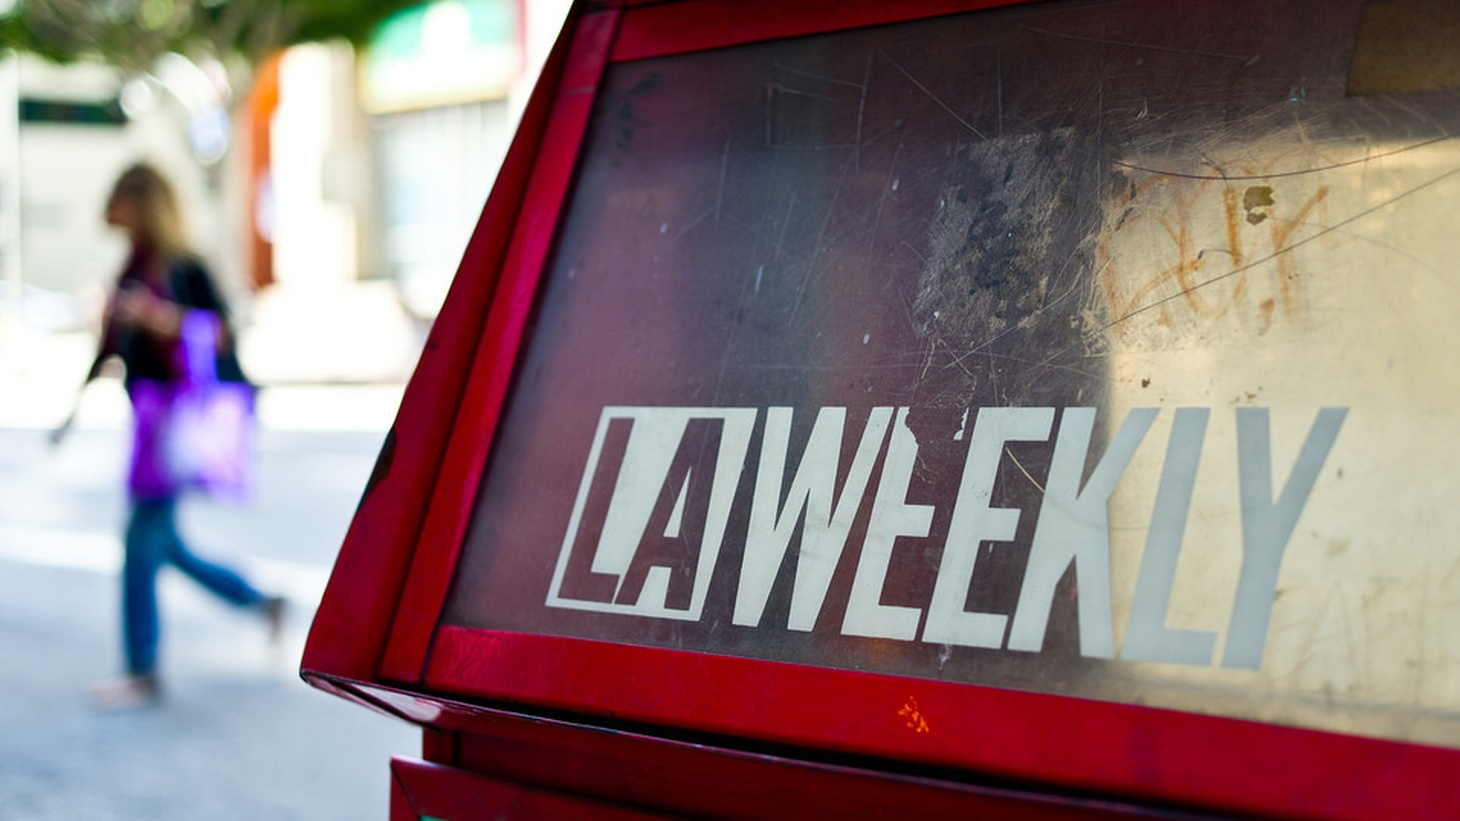 Yesterday, new owners at the LA Weekly laid off nine of its 13 editorial staffers. There isn't much clarity on what's next for the paper.